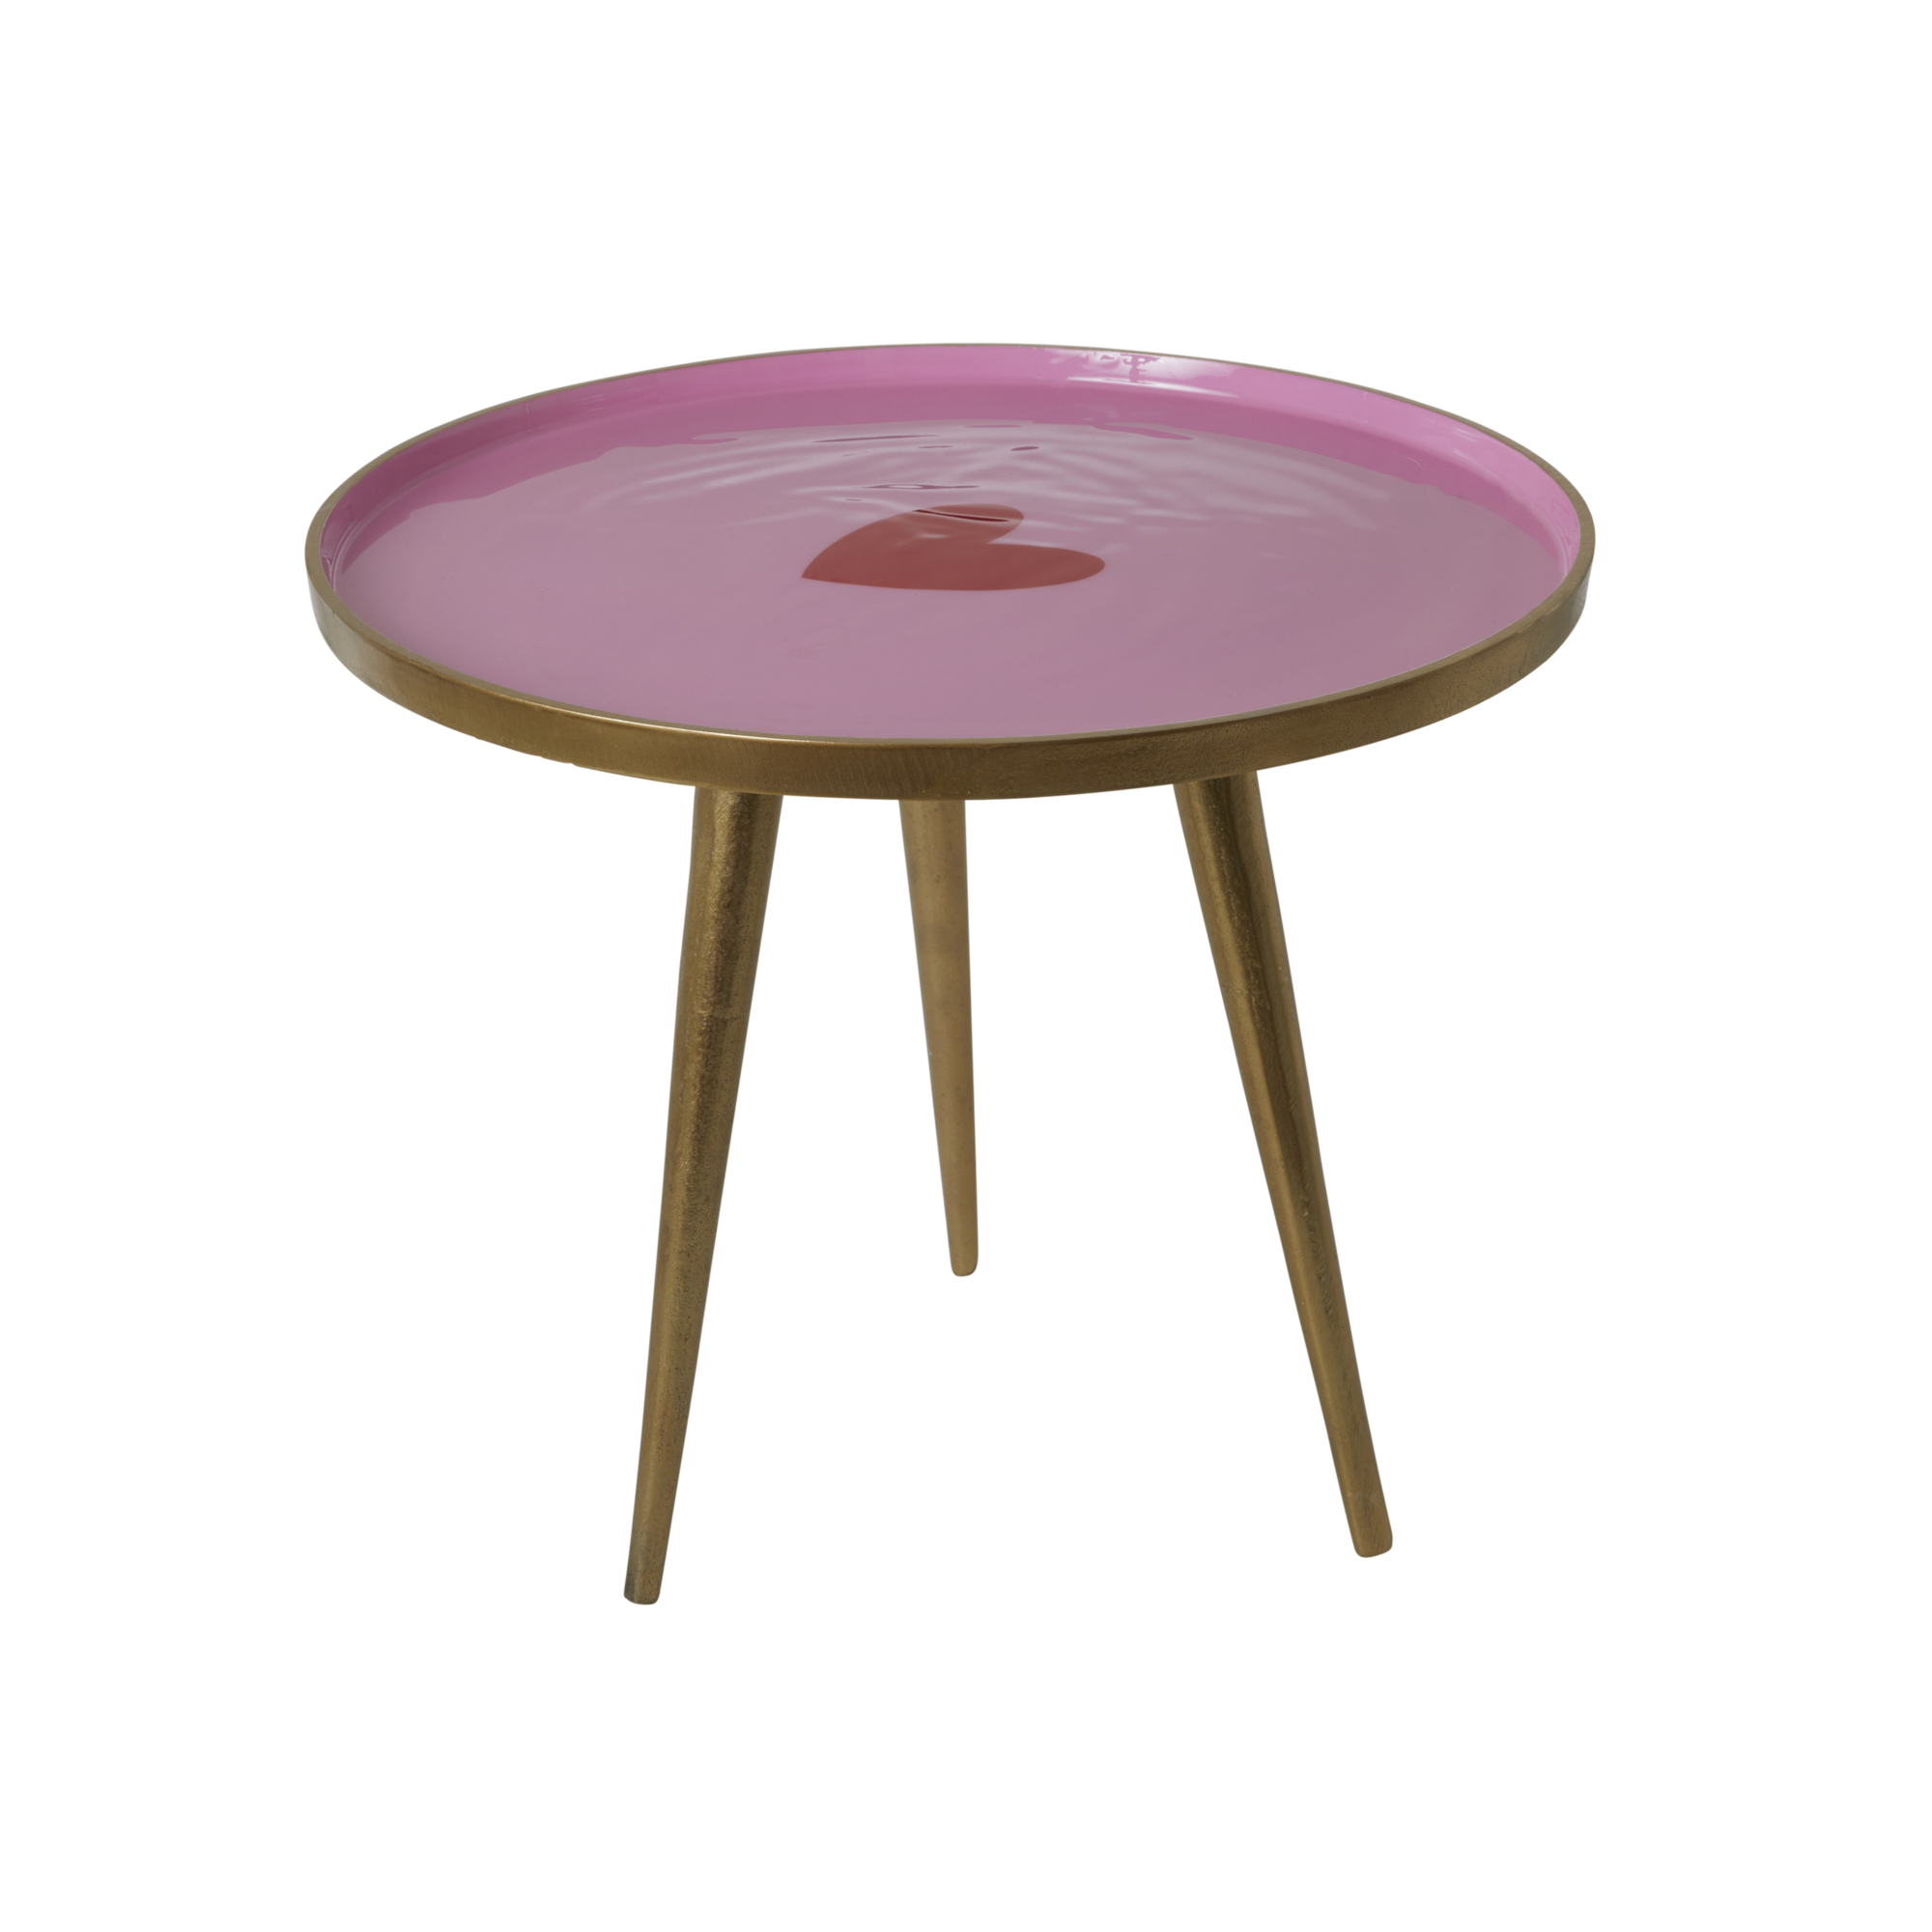 Rice - Round Metal Side Table Small - Pink with Heart